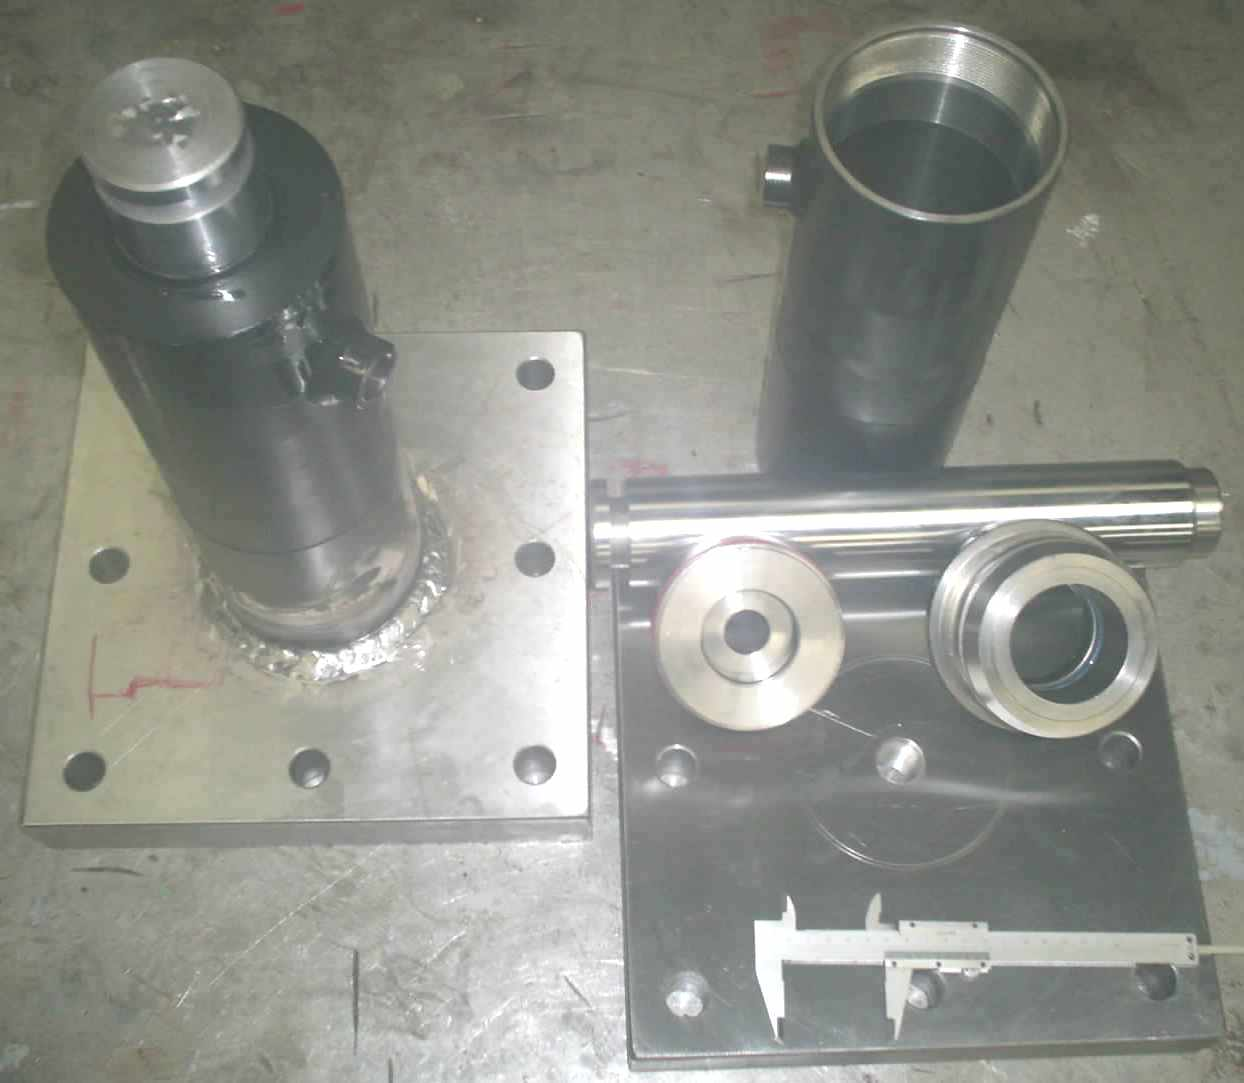 fabrication_verin_hydraulique3.JPG